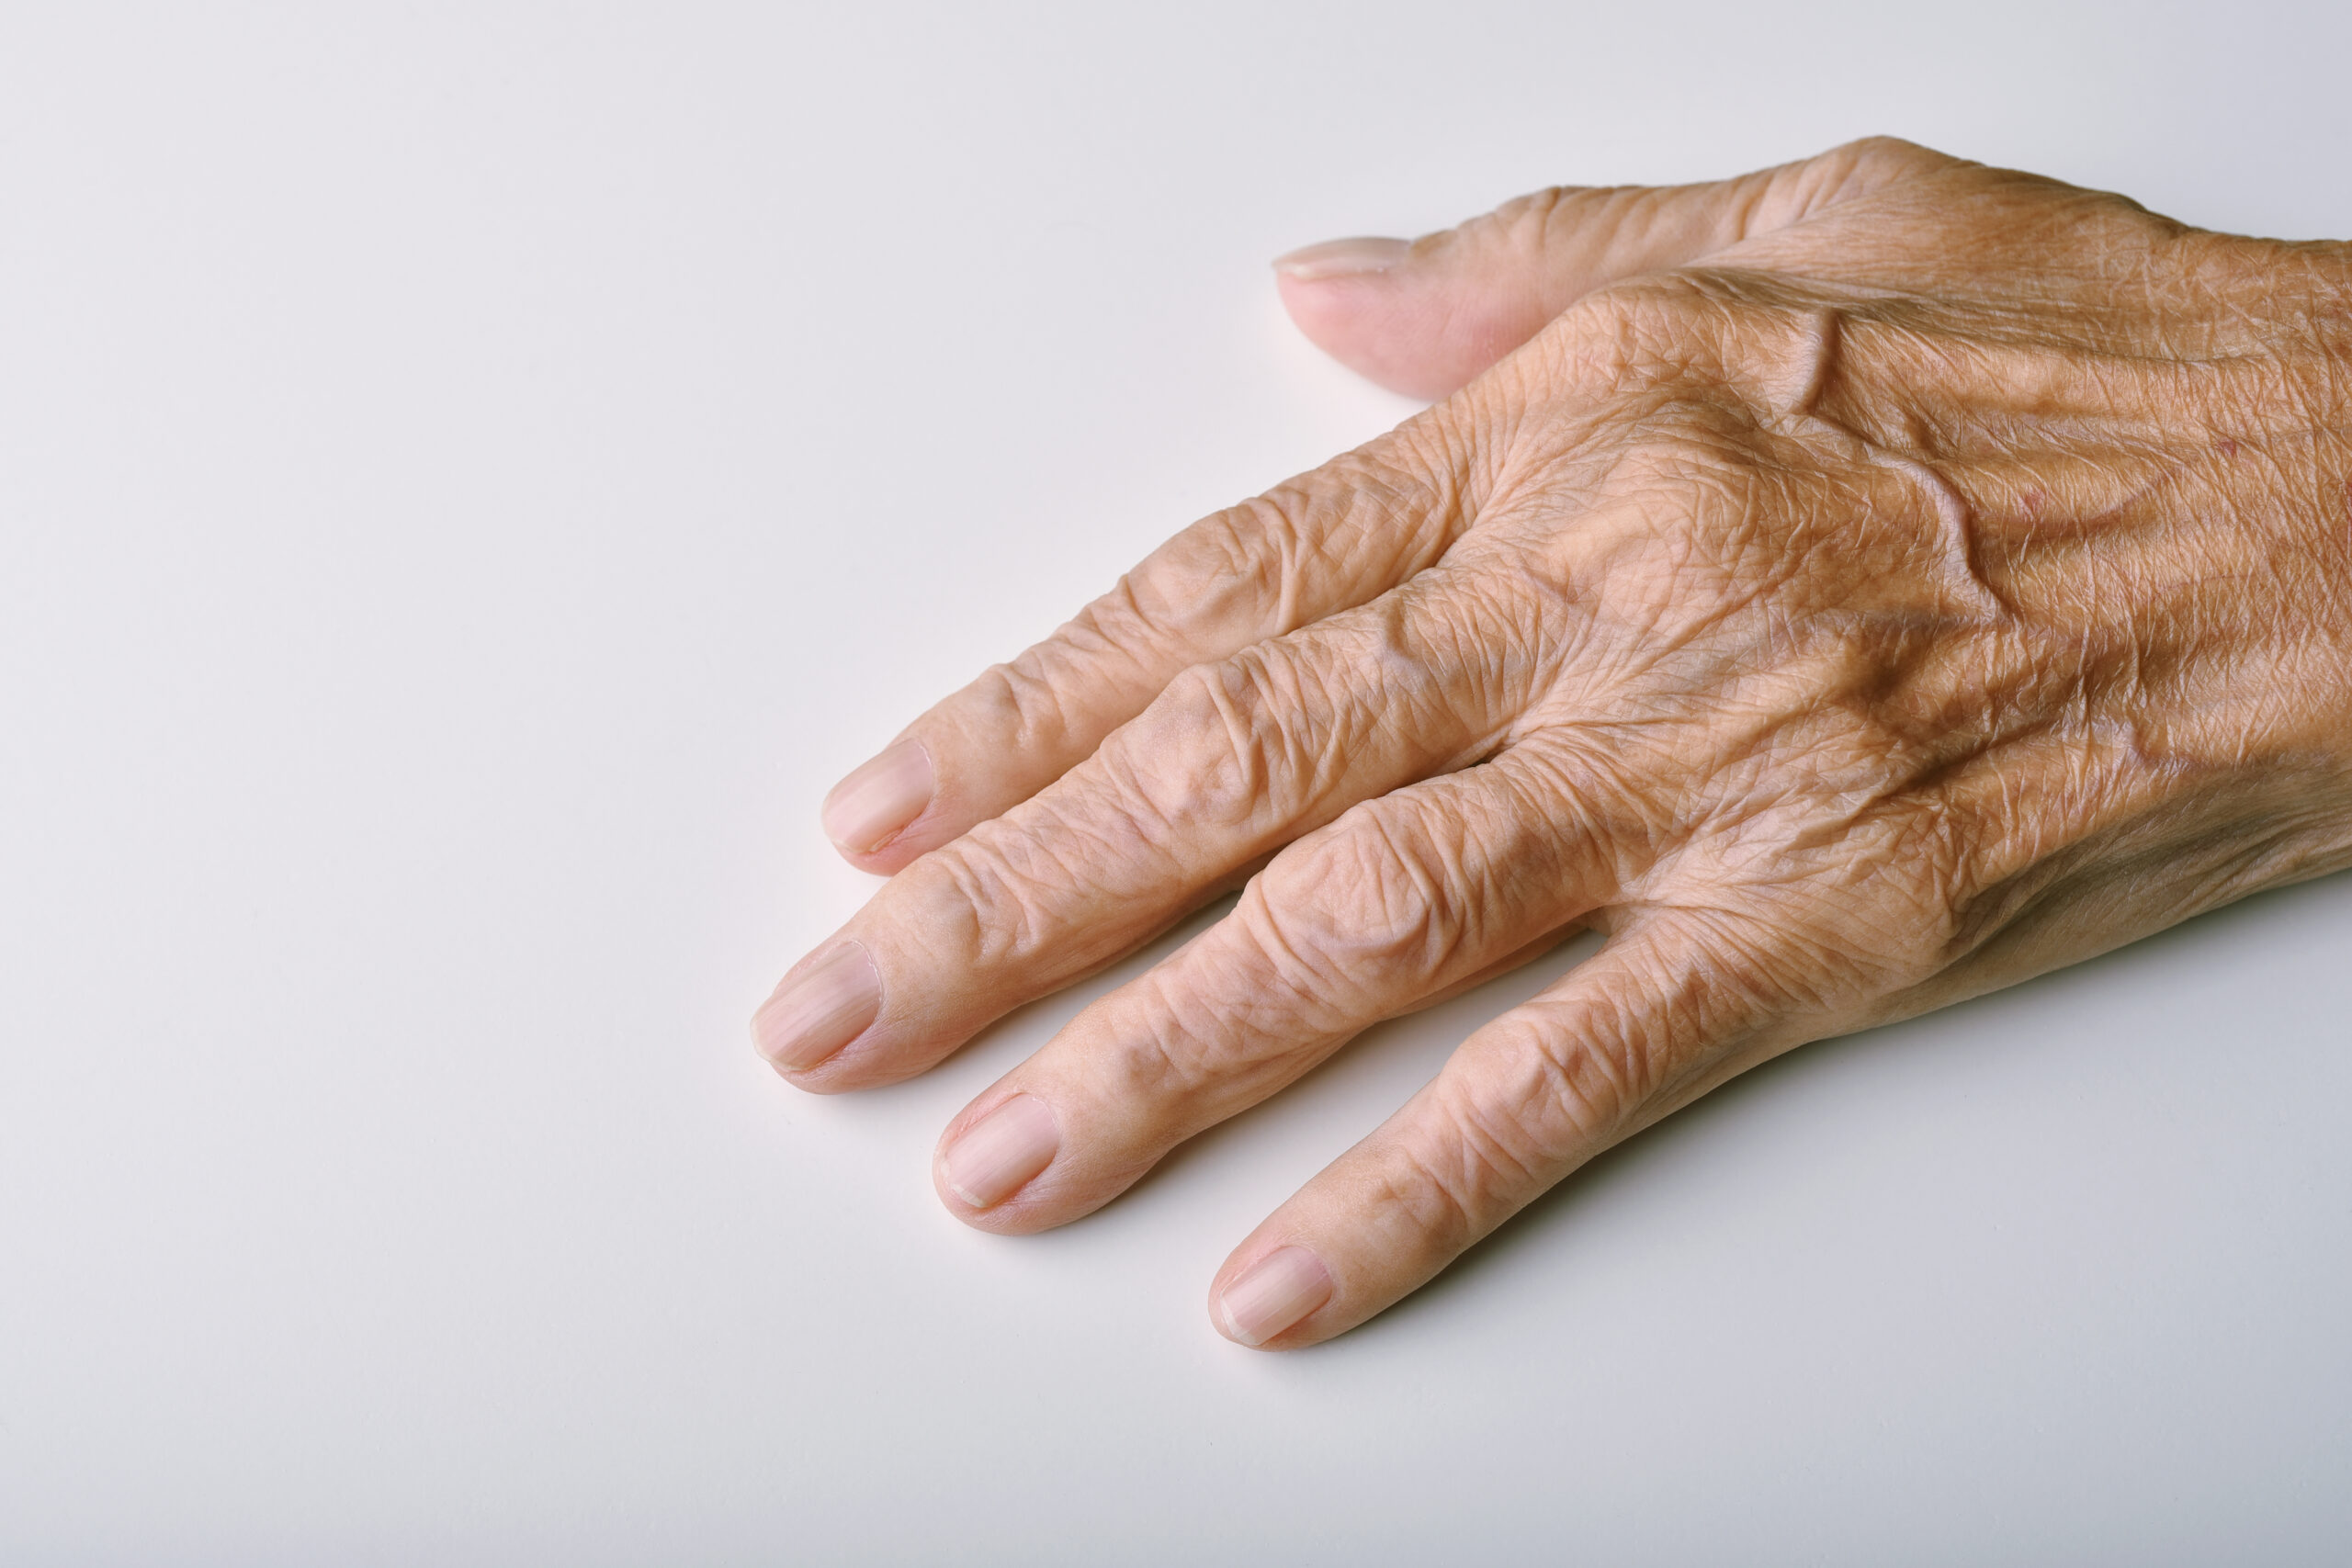 Old woman's deform hands, Finger pain and stiffness from arthritis in senior people, Elderly healthcare concept.